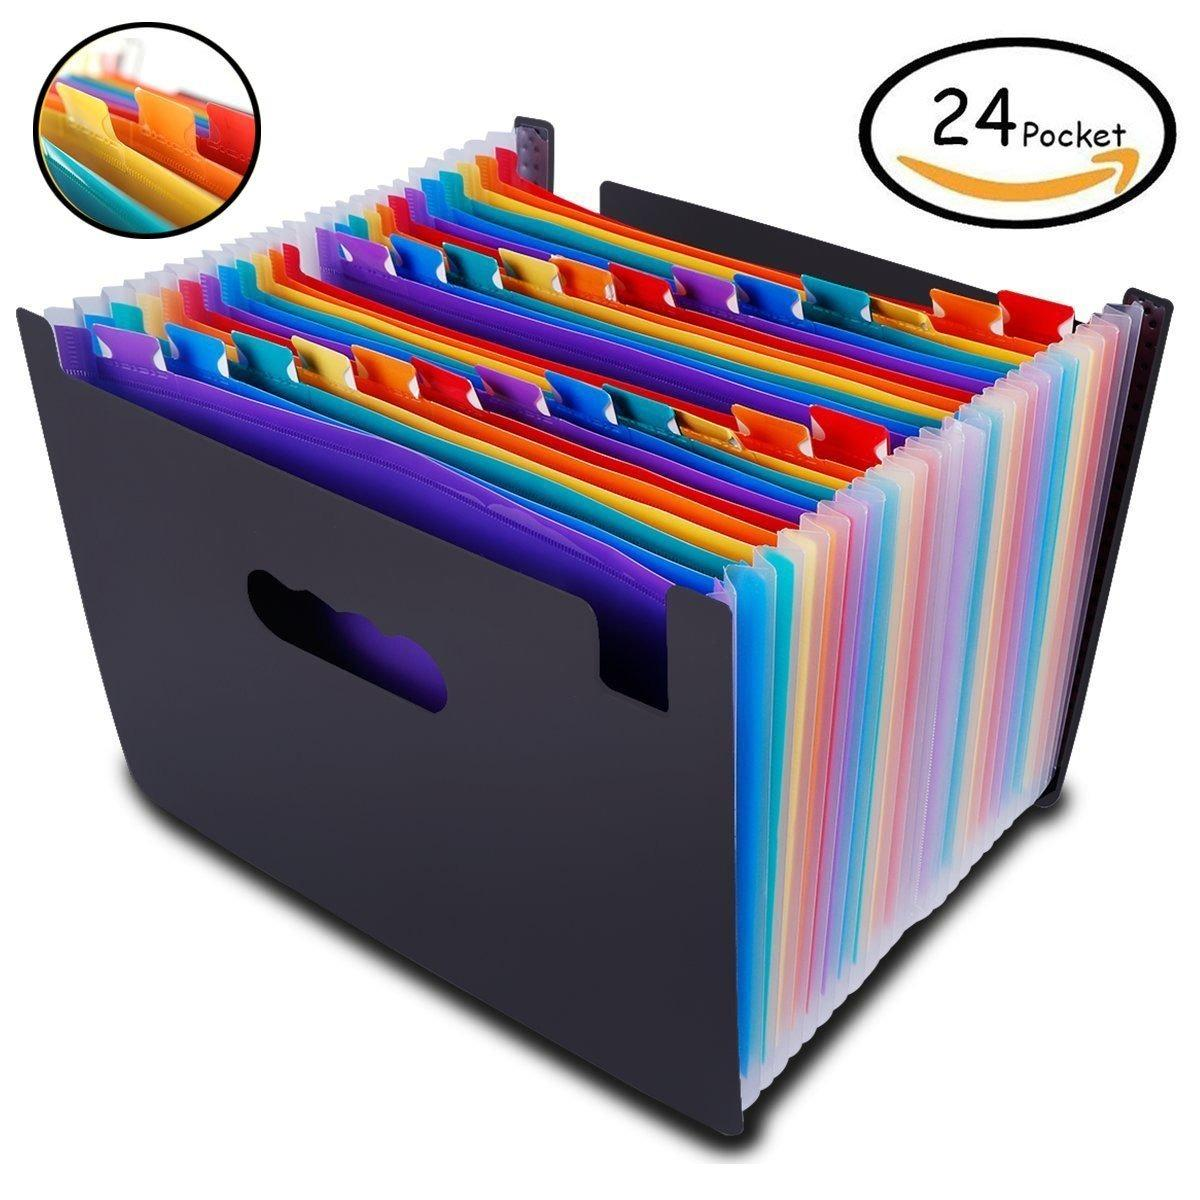 Buy Expanding File Folder Large Plastic Rainbow Expandable File Organizer Self Standing Accordion A4 Document Folder Wallet Briefcase Business Filing Box 24 Pockets Intl Online China